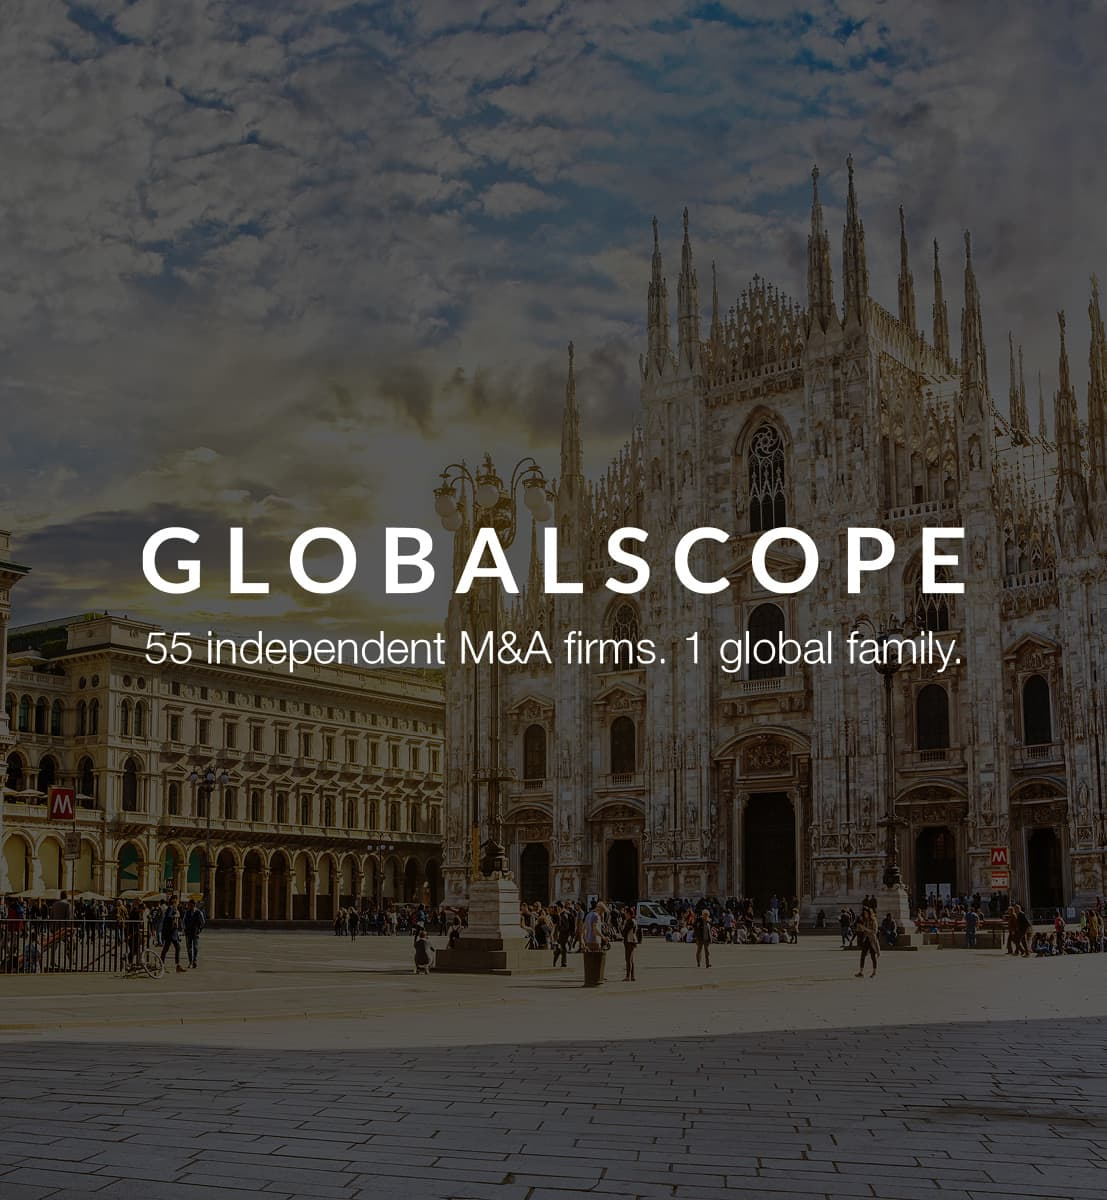 Globalscope hosts succesful international conference in Milan, Italy, and welcomes two new members